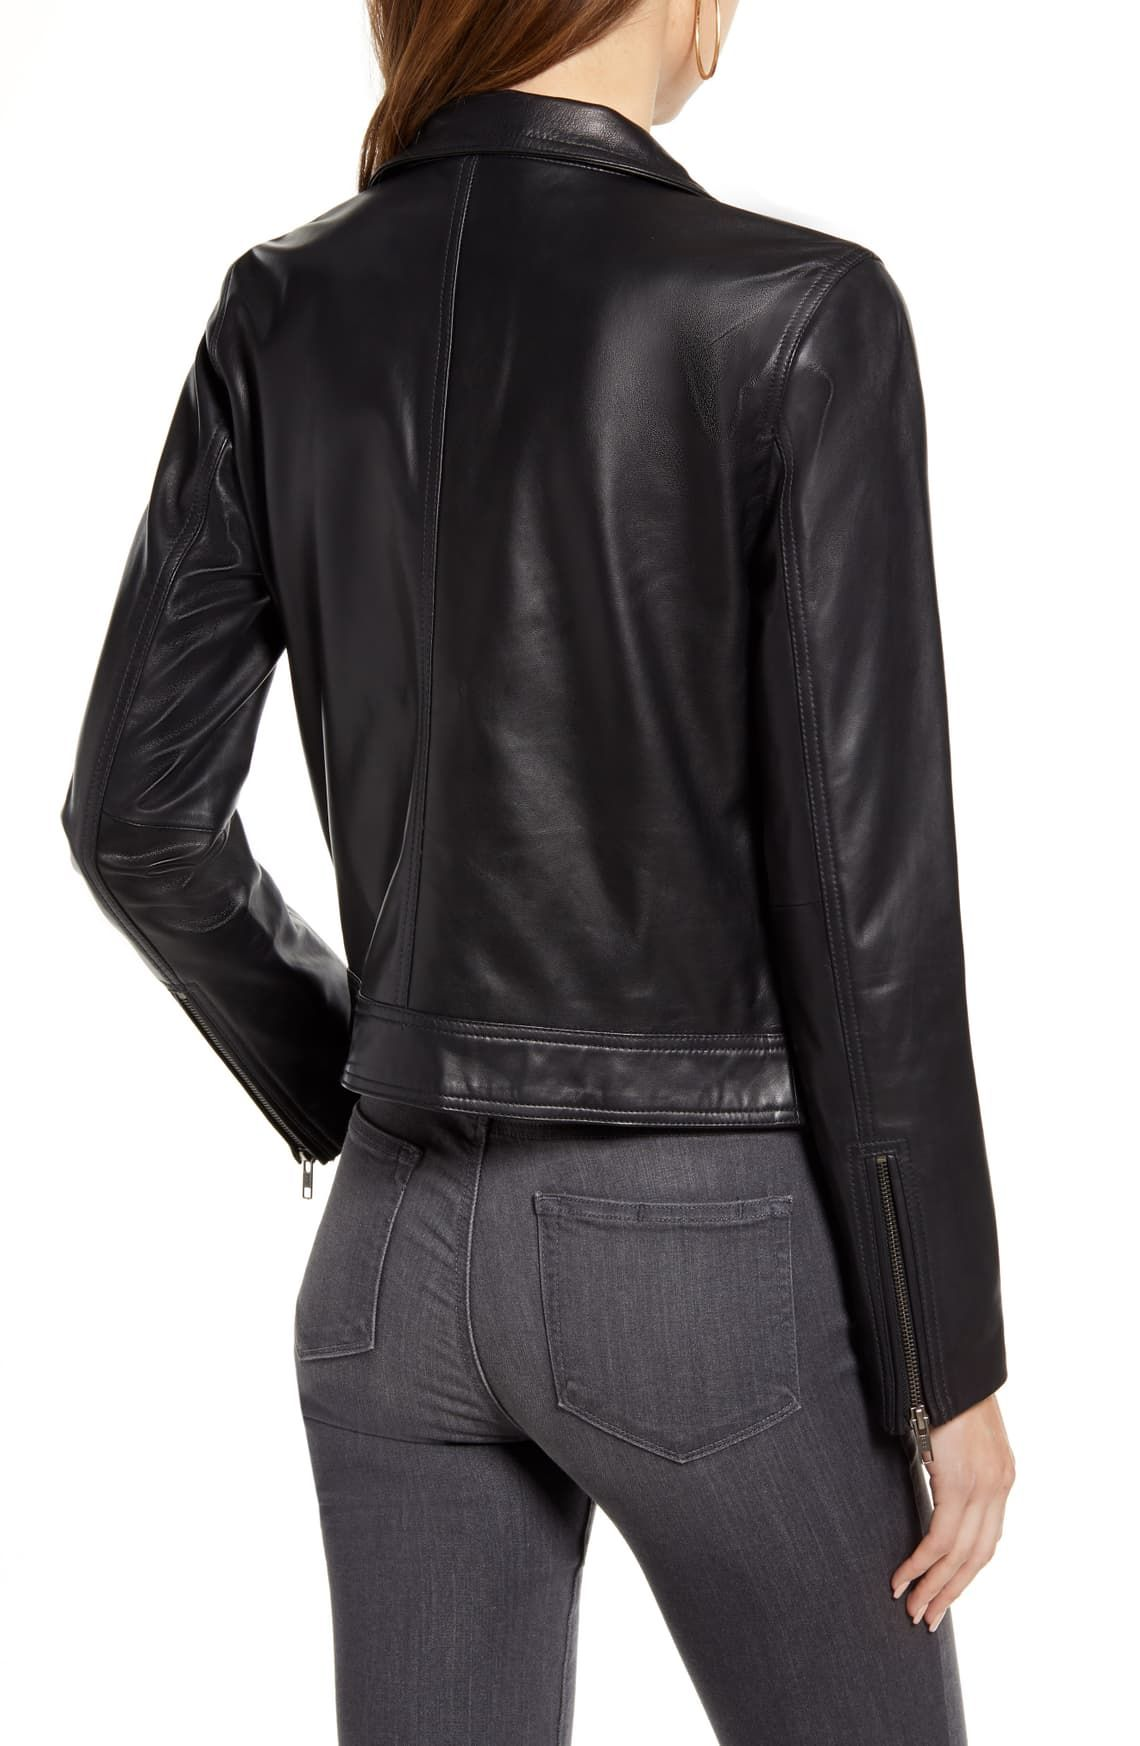 Chelsea 28 Leather Moto Jacket Nordstrom Leather Moto Jacket Moto Jacket Jackets [ 1746 x 1140 Pixel ]